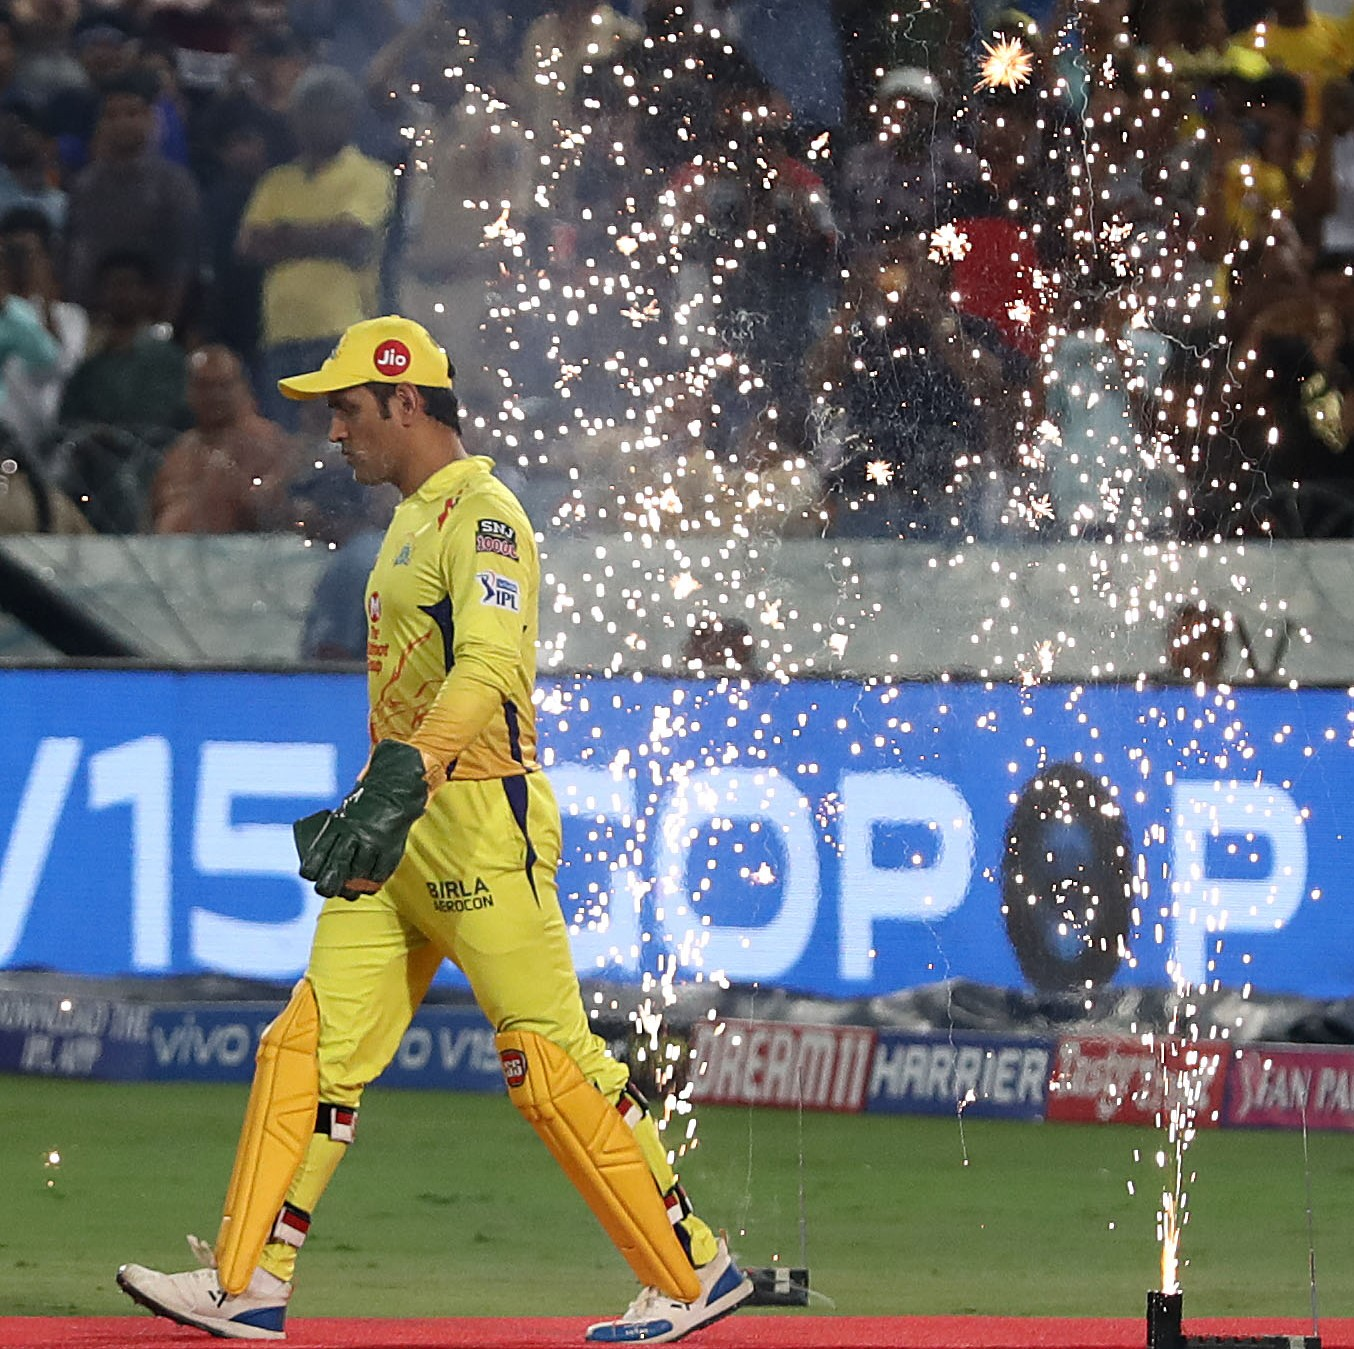 """""""MS [Dhoni] has been able to manage his body well... I am a big fan of MS and would want to see him continue playing whether it's for CSK or internationally,"""" says his Chennai Super Kings team-mate Shane Watson.  (File photo: Robert Cianflone/Getty Images)"""